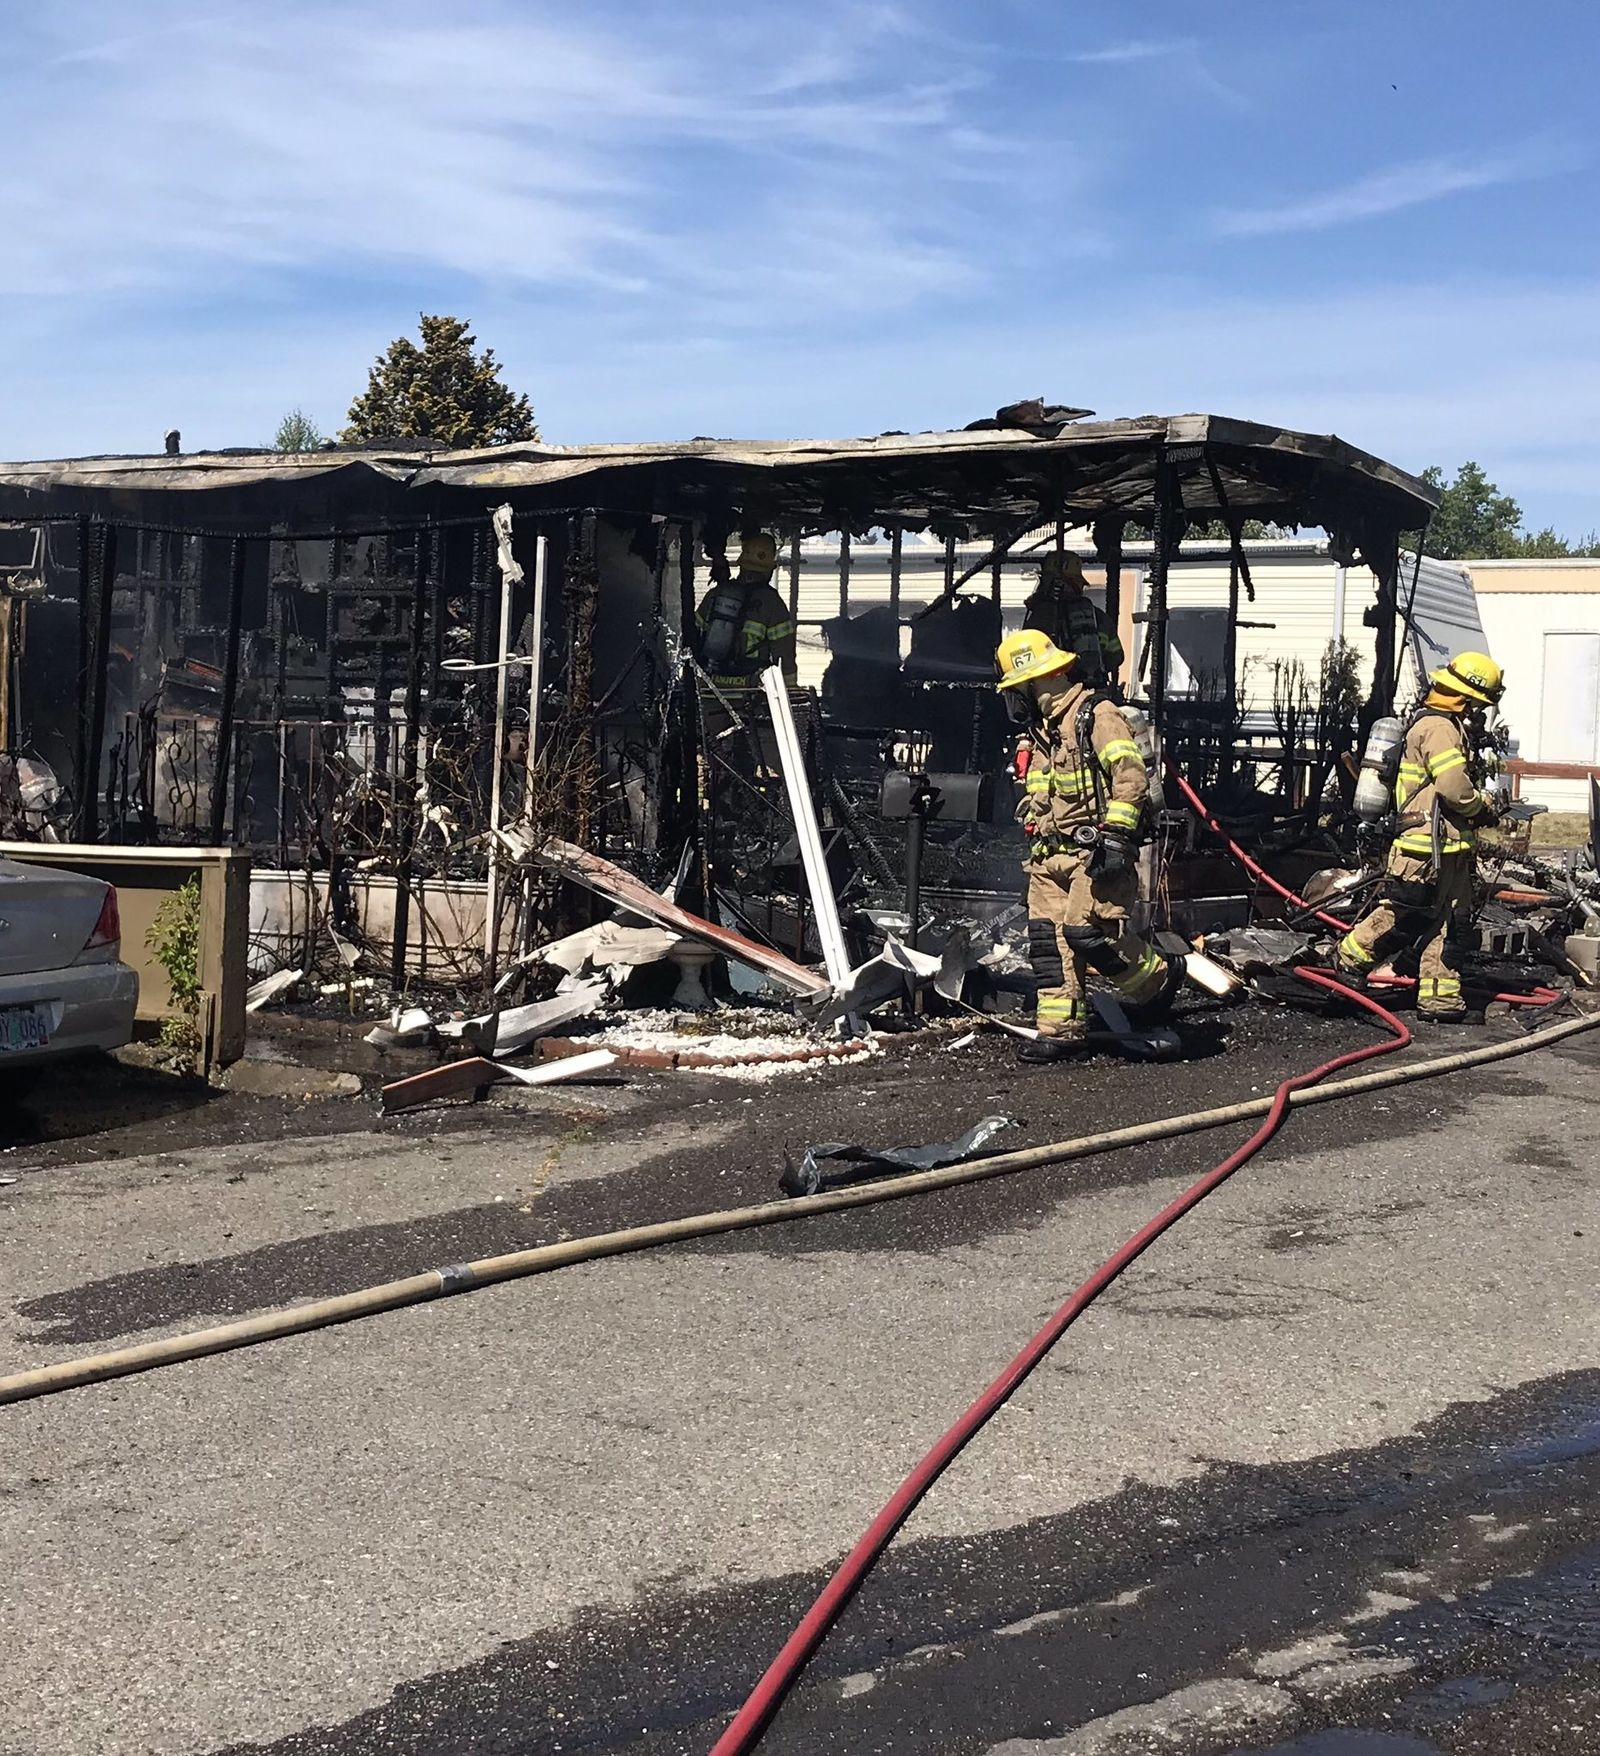 A fire crew works to clean up and put out hot spots in a fire that destroyed this mobile home in Beaverton Monday, June 17, 2019. (Photo: TVF&R){ }